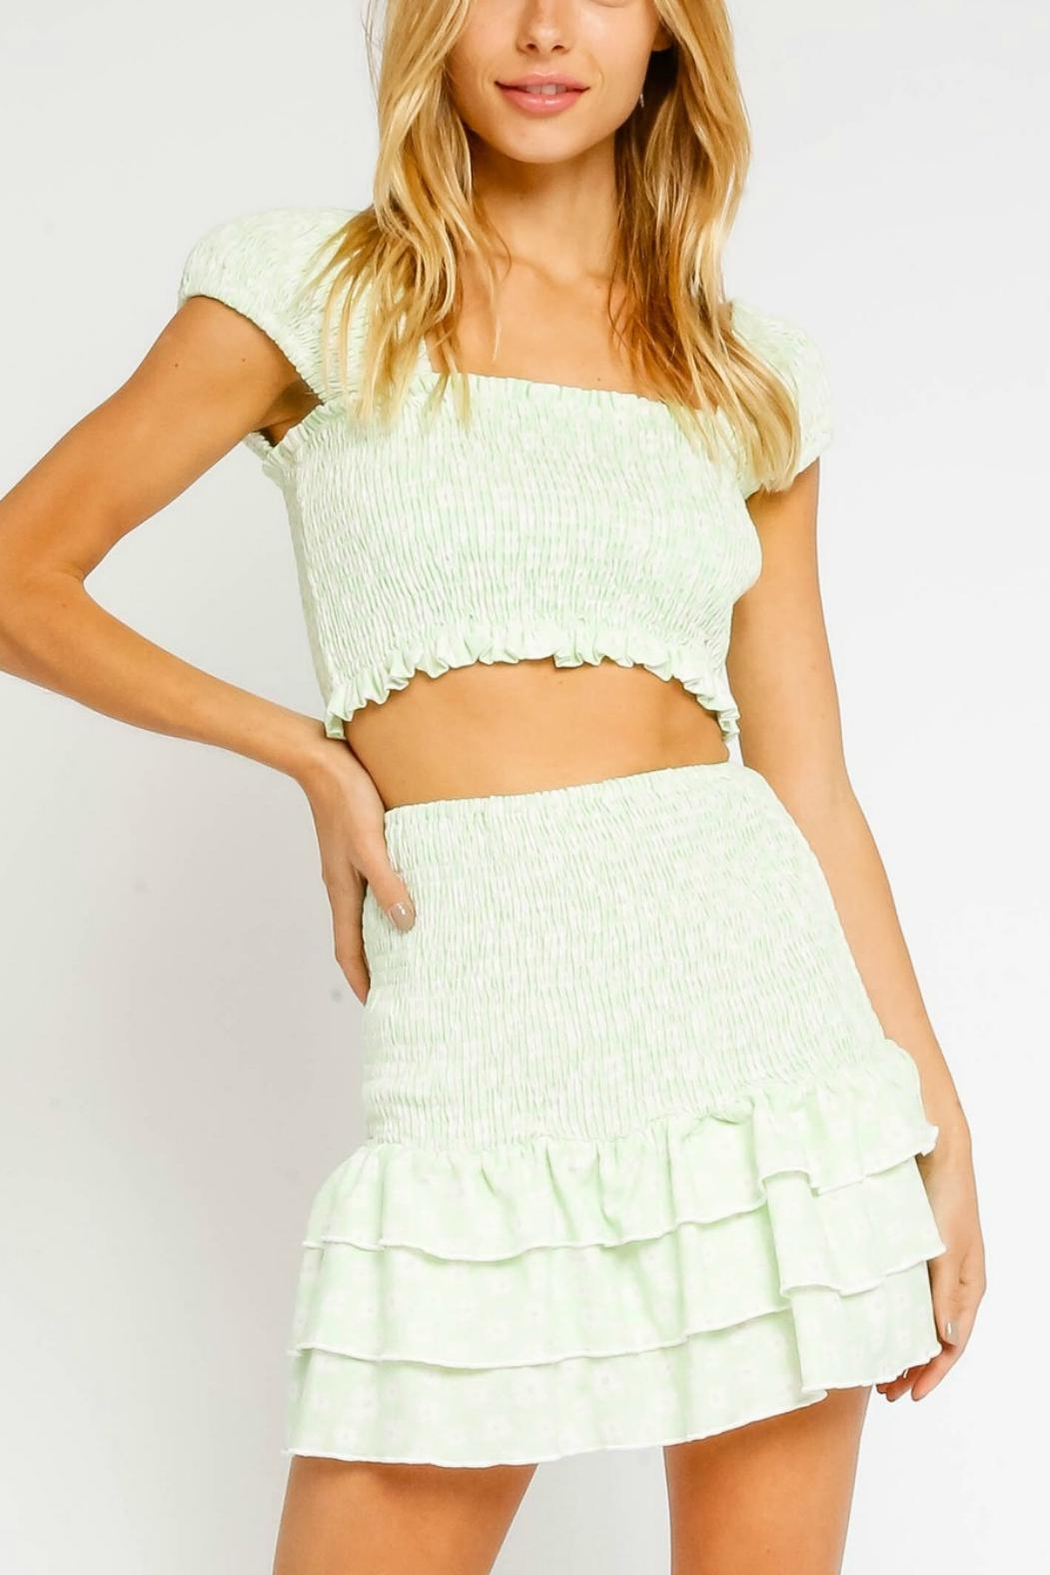 Pretty Little Things Floral Crop Top - Main Image